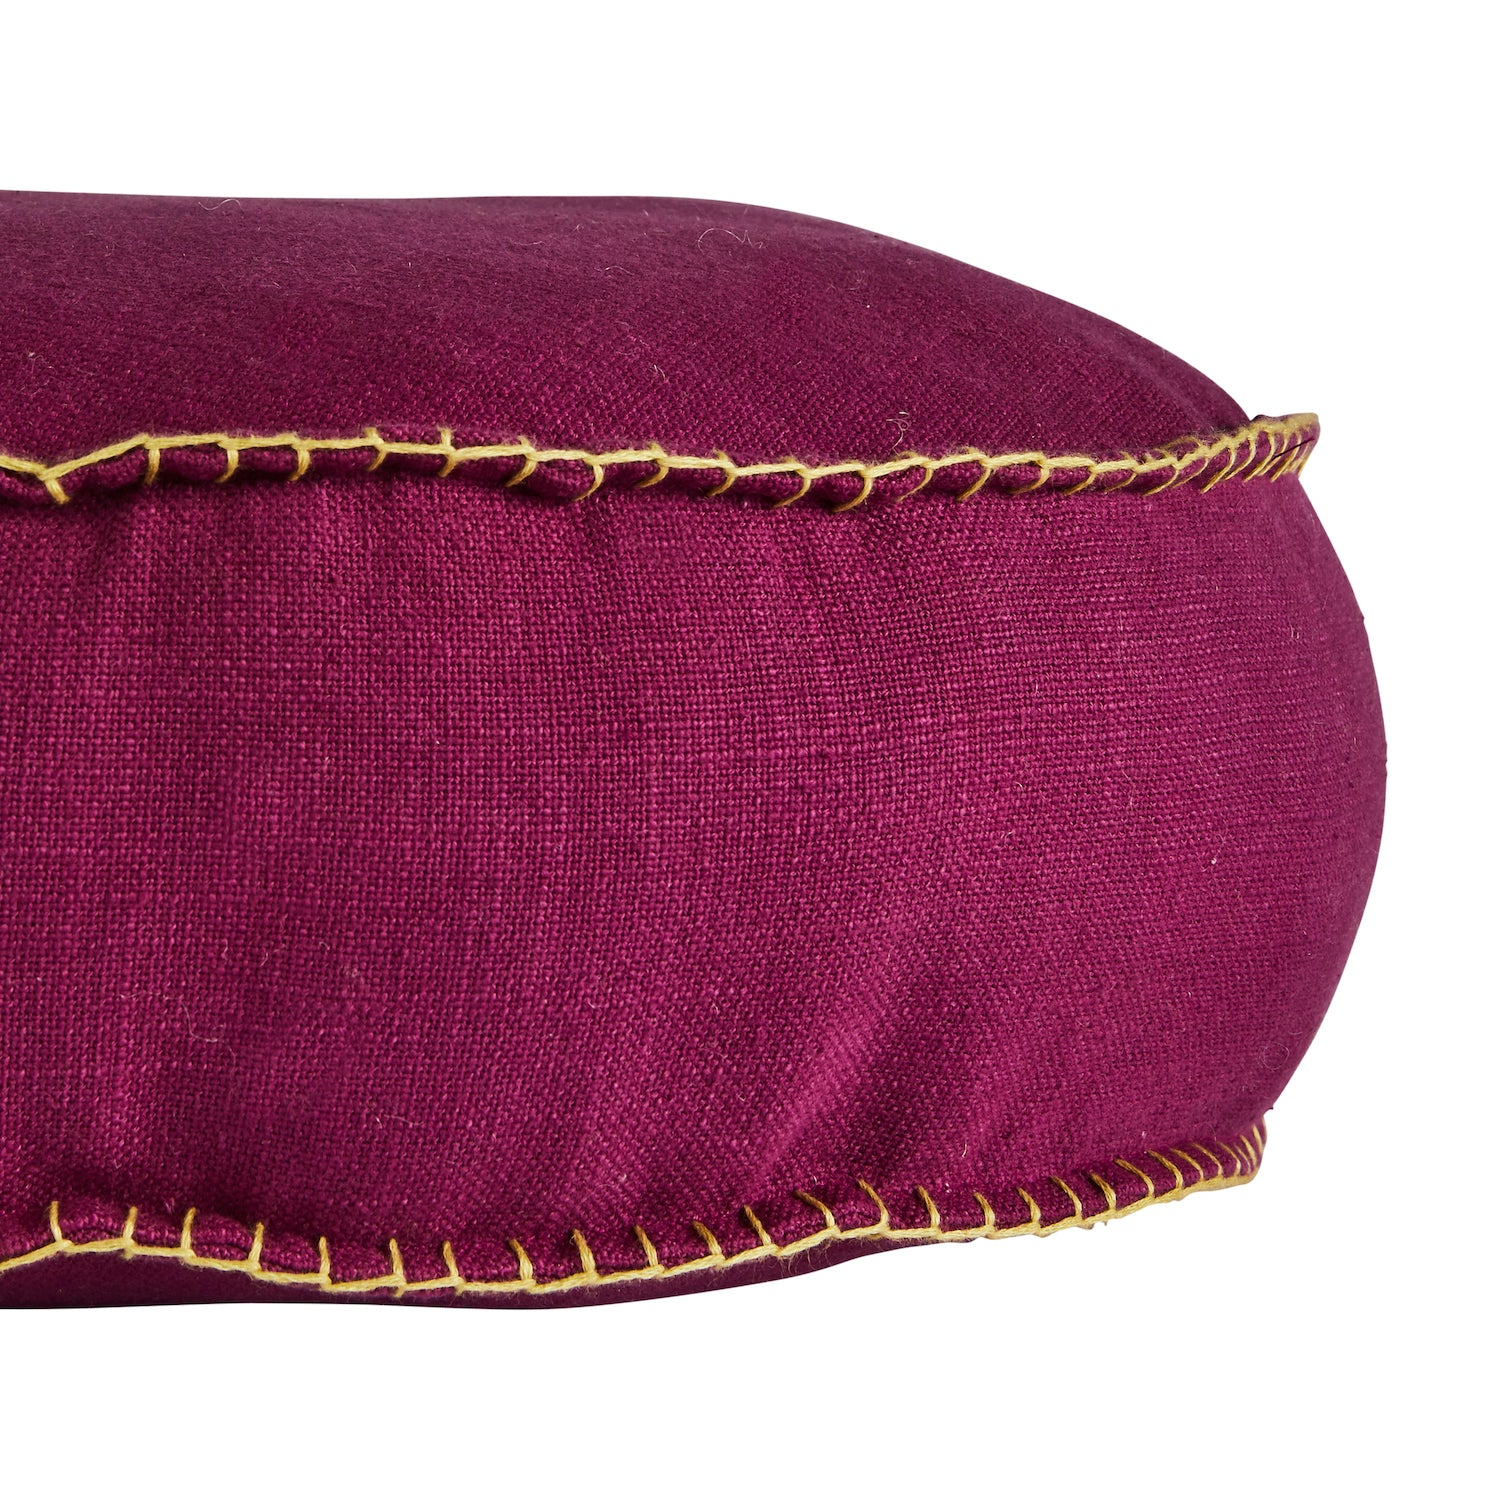 Sage and Clare - Rylie Round Cushion - Grape